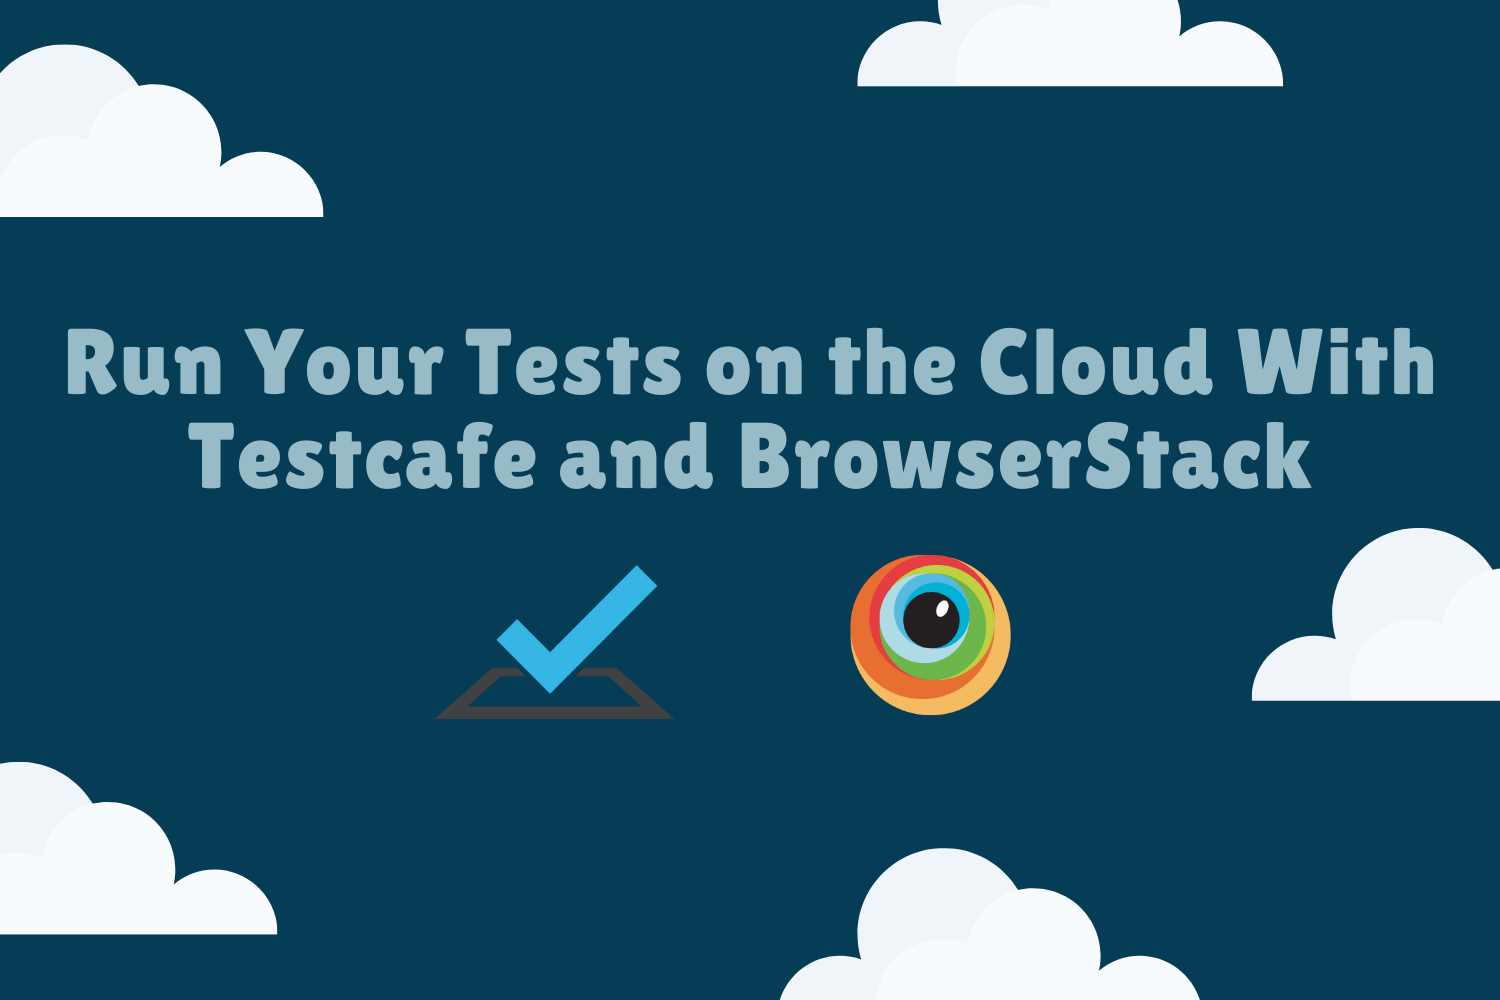 Run Your Tests on the Cloud With TestCafe and BrowserStack